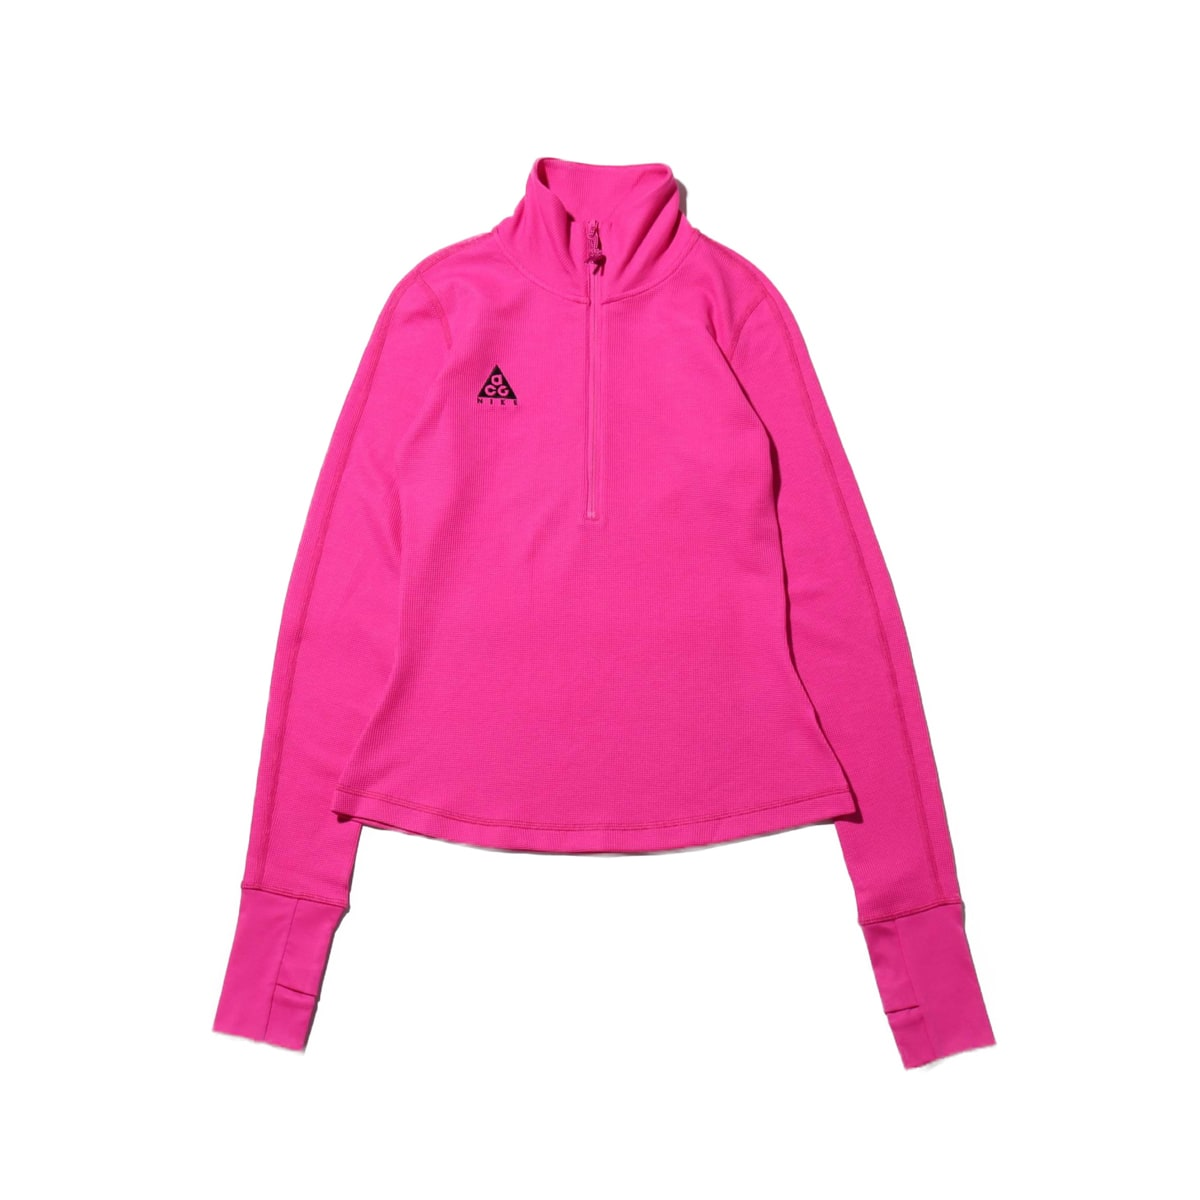 NIKE AS W NRG ACG LS THERMAL TOP ACTIVE FUCHSIA/BLACK 20SP-S_photo_large